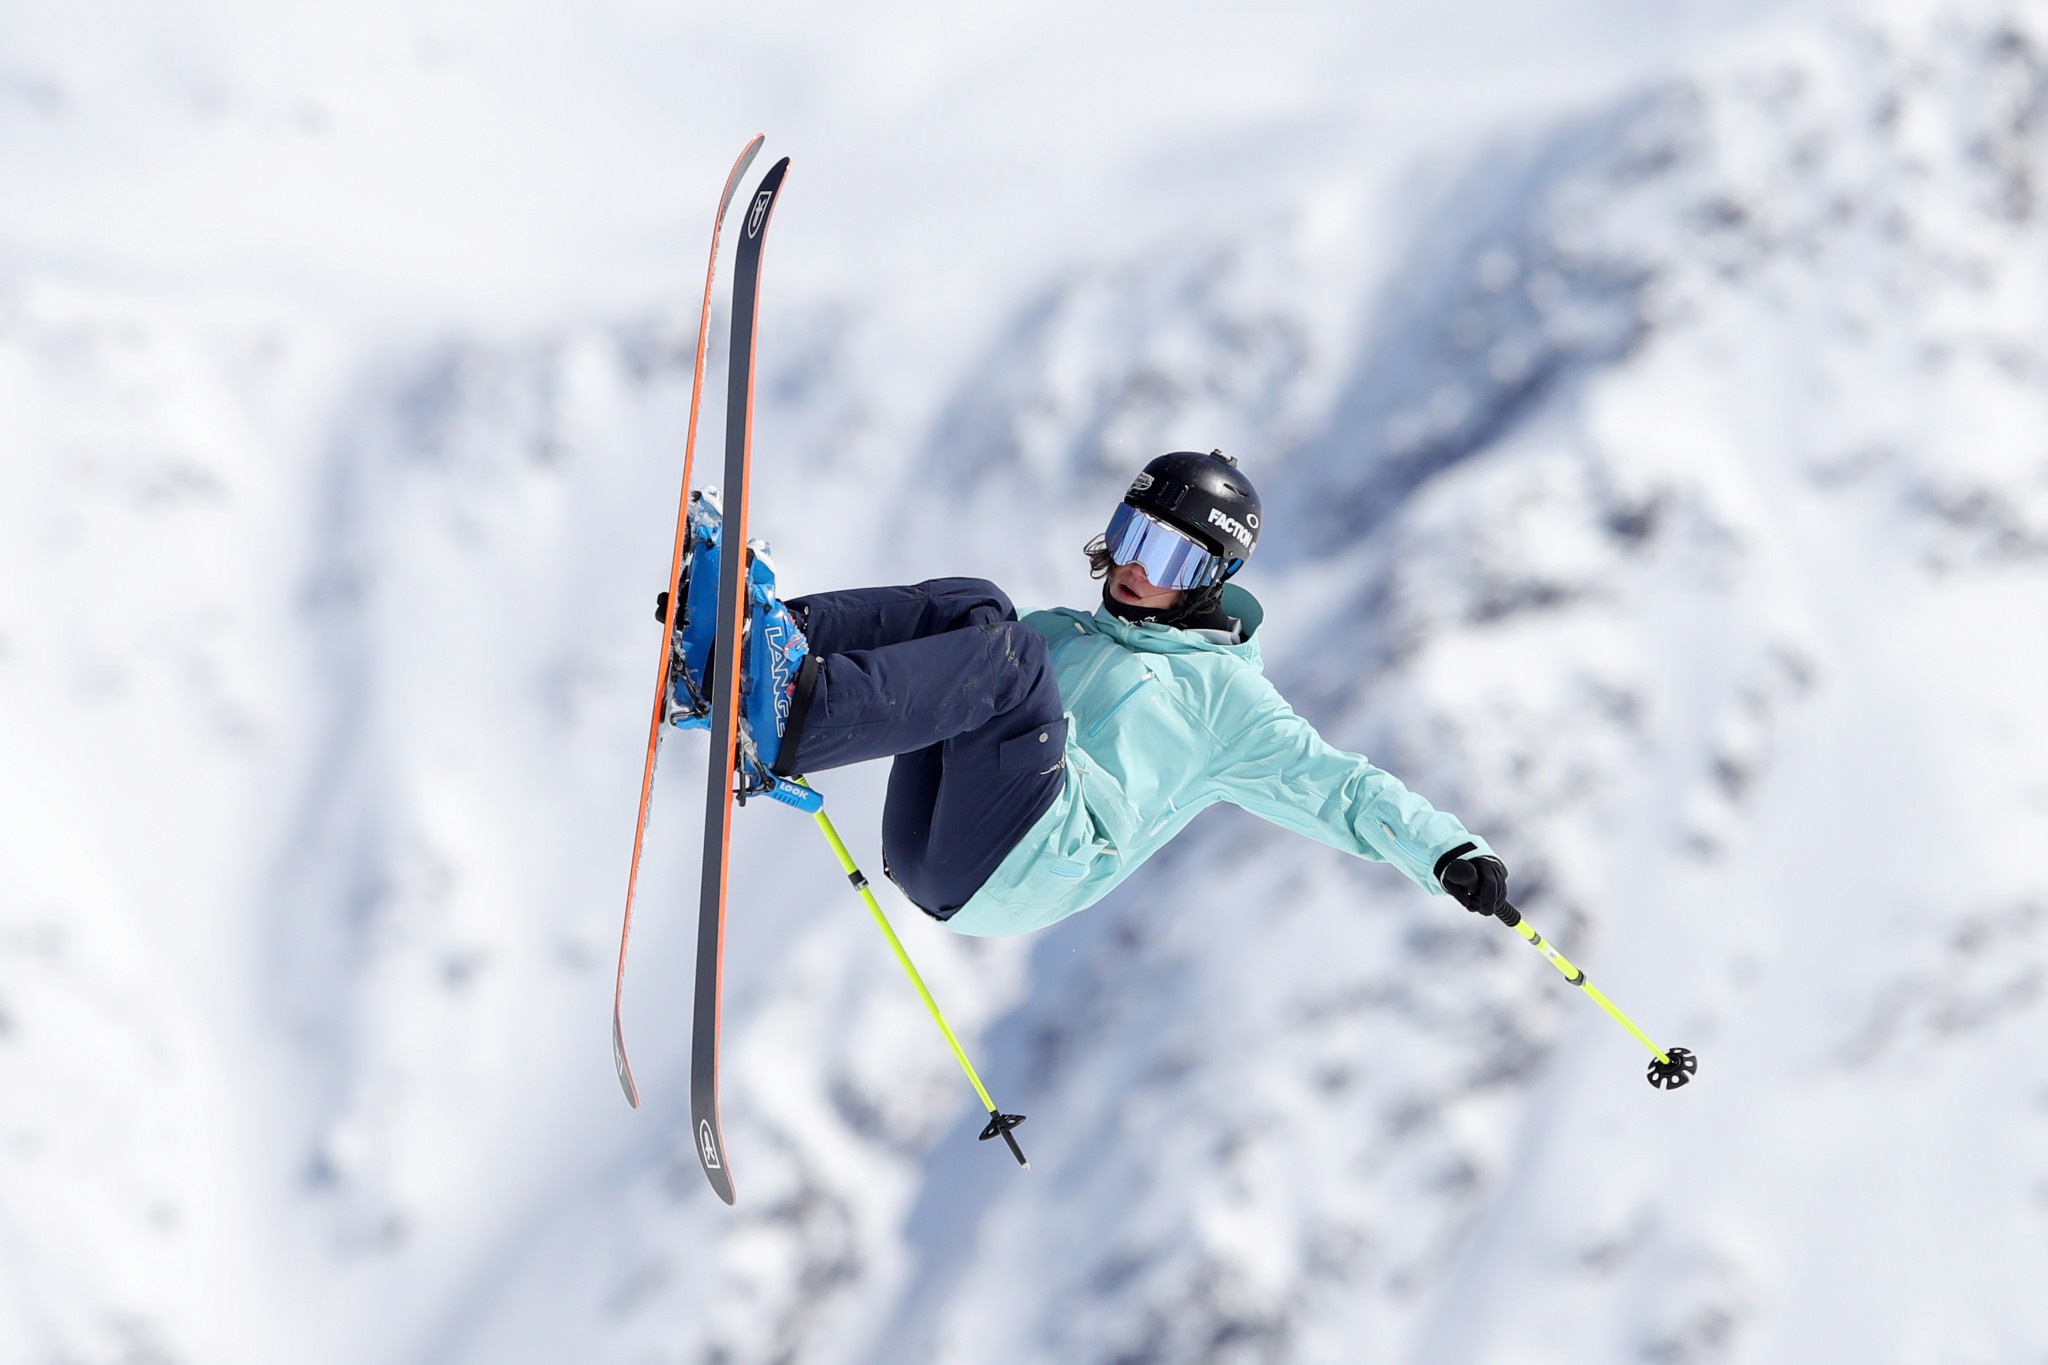 FIS Freeski Slopestyle World Cup season finally ready to get under way in Font Remeu